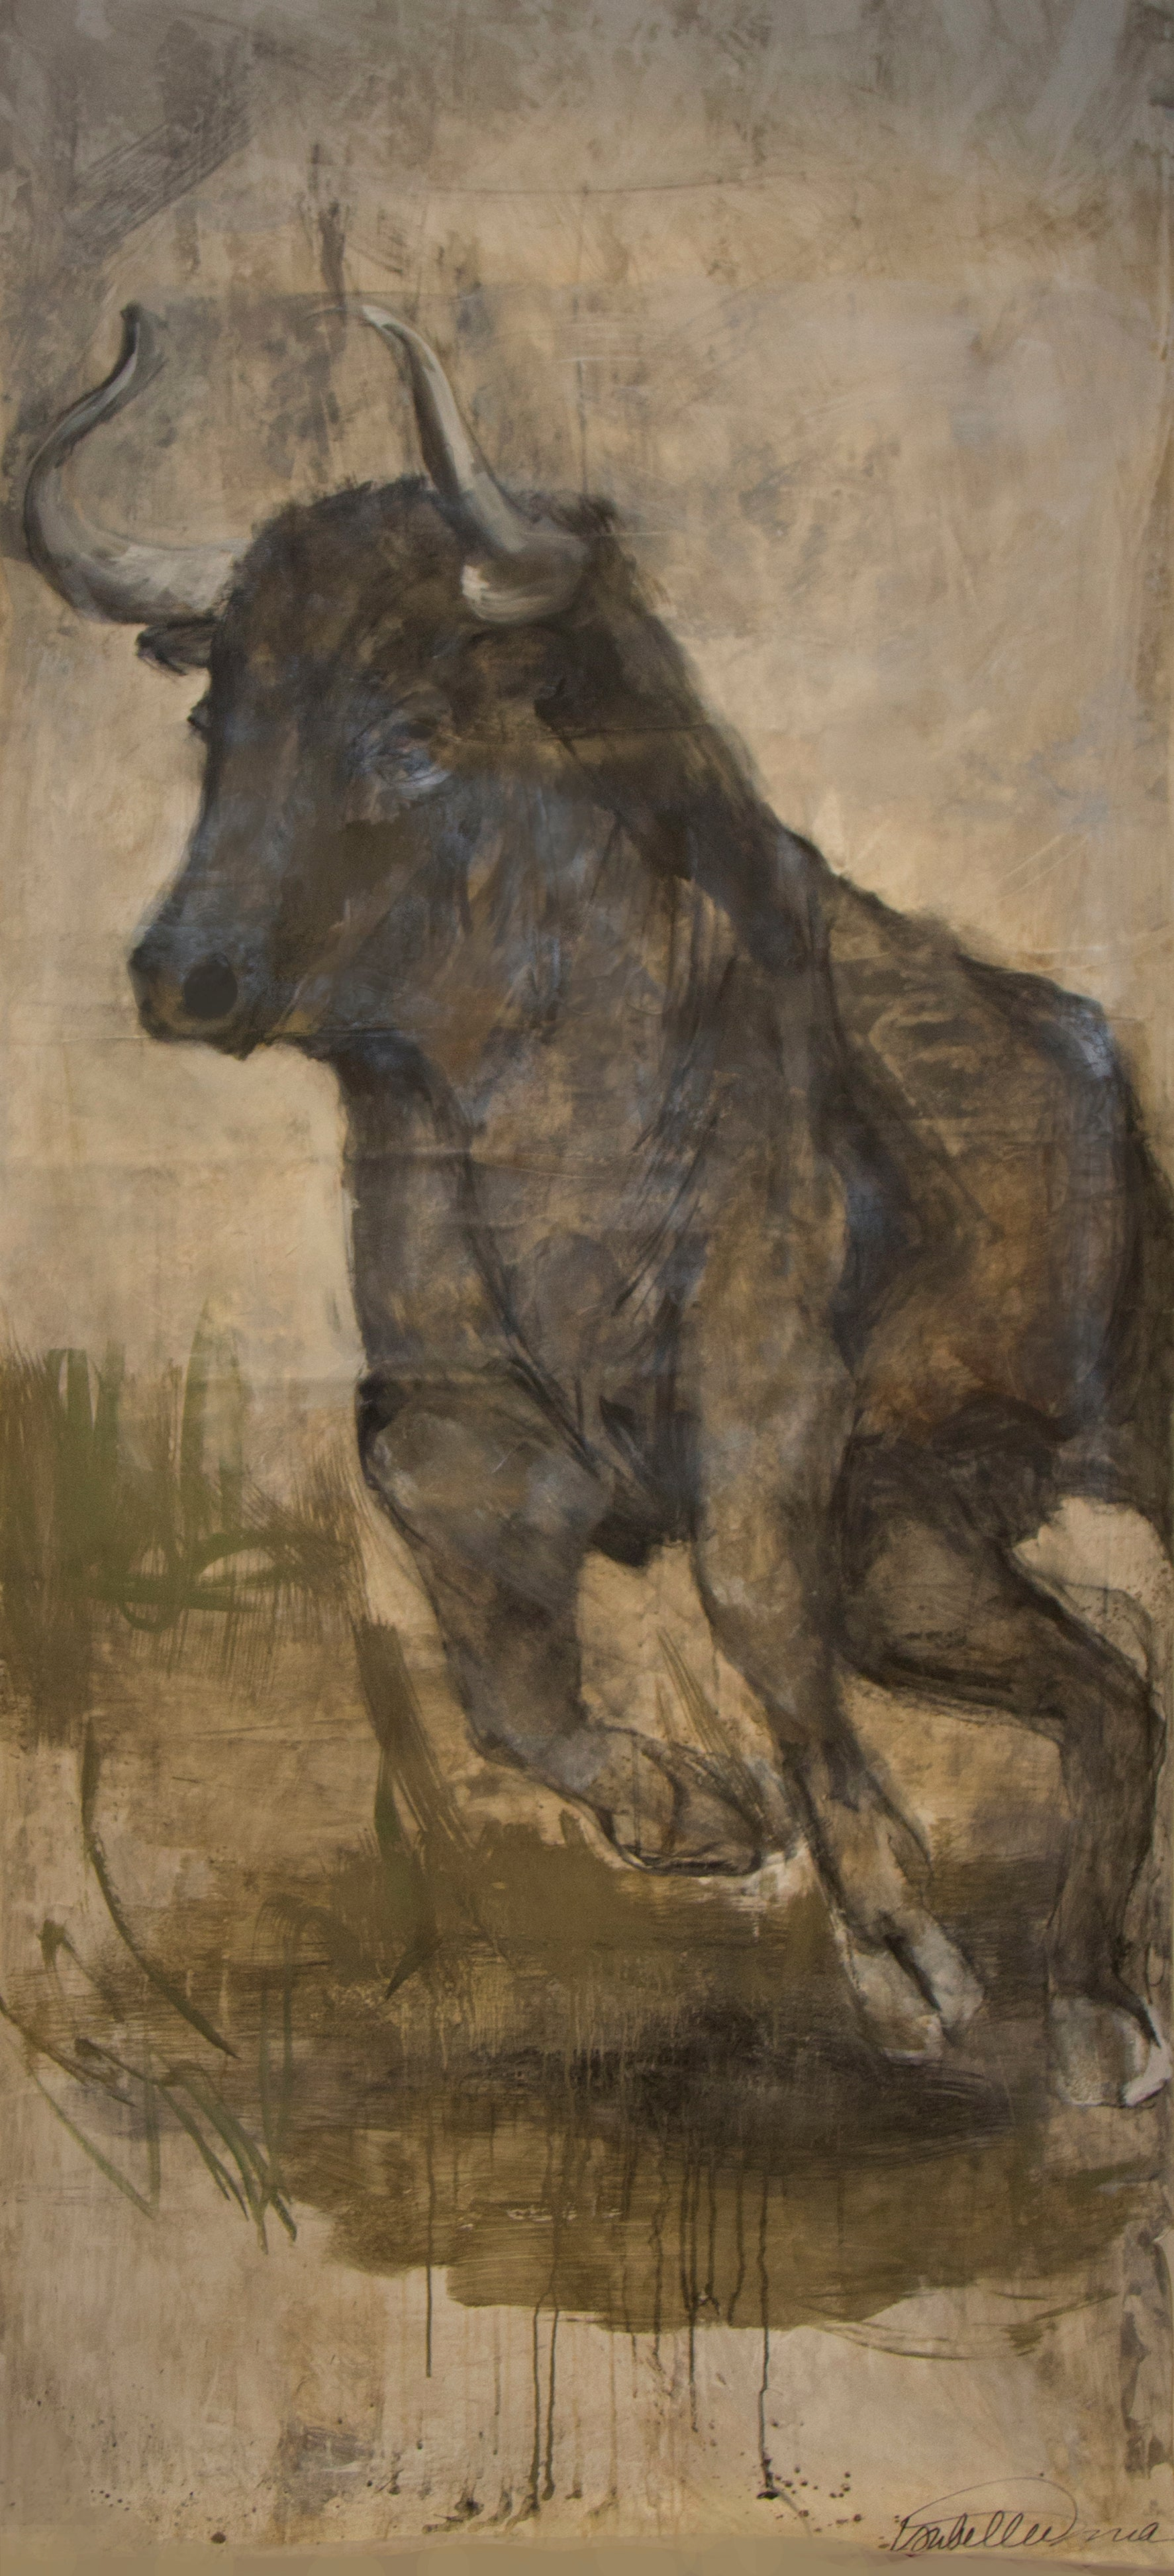 Samson the bull's partner Delilah, in muted natural tones, sweet and full of life. A fantastic piece for a lofty wall and space, perhaps with her pal Samson!